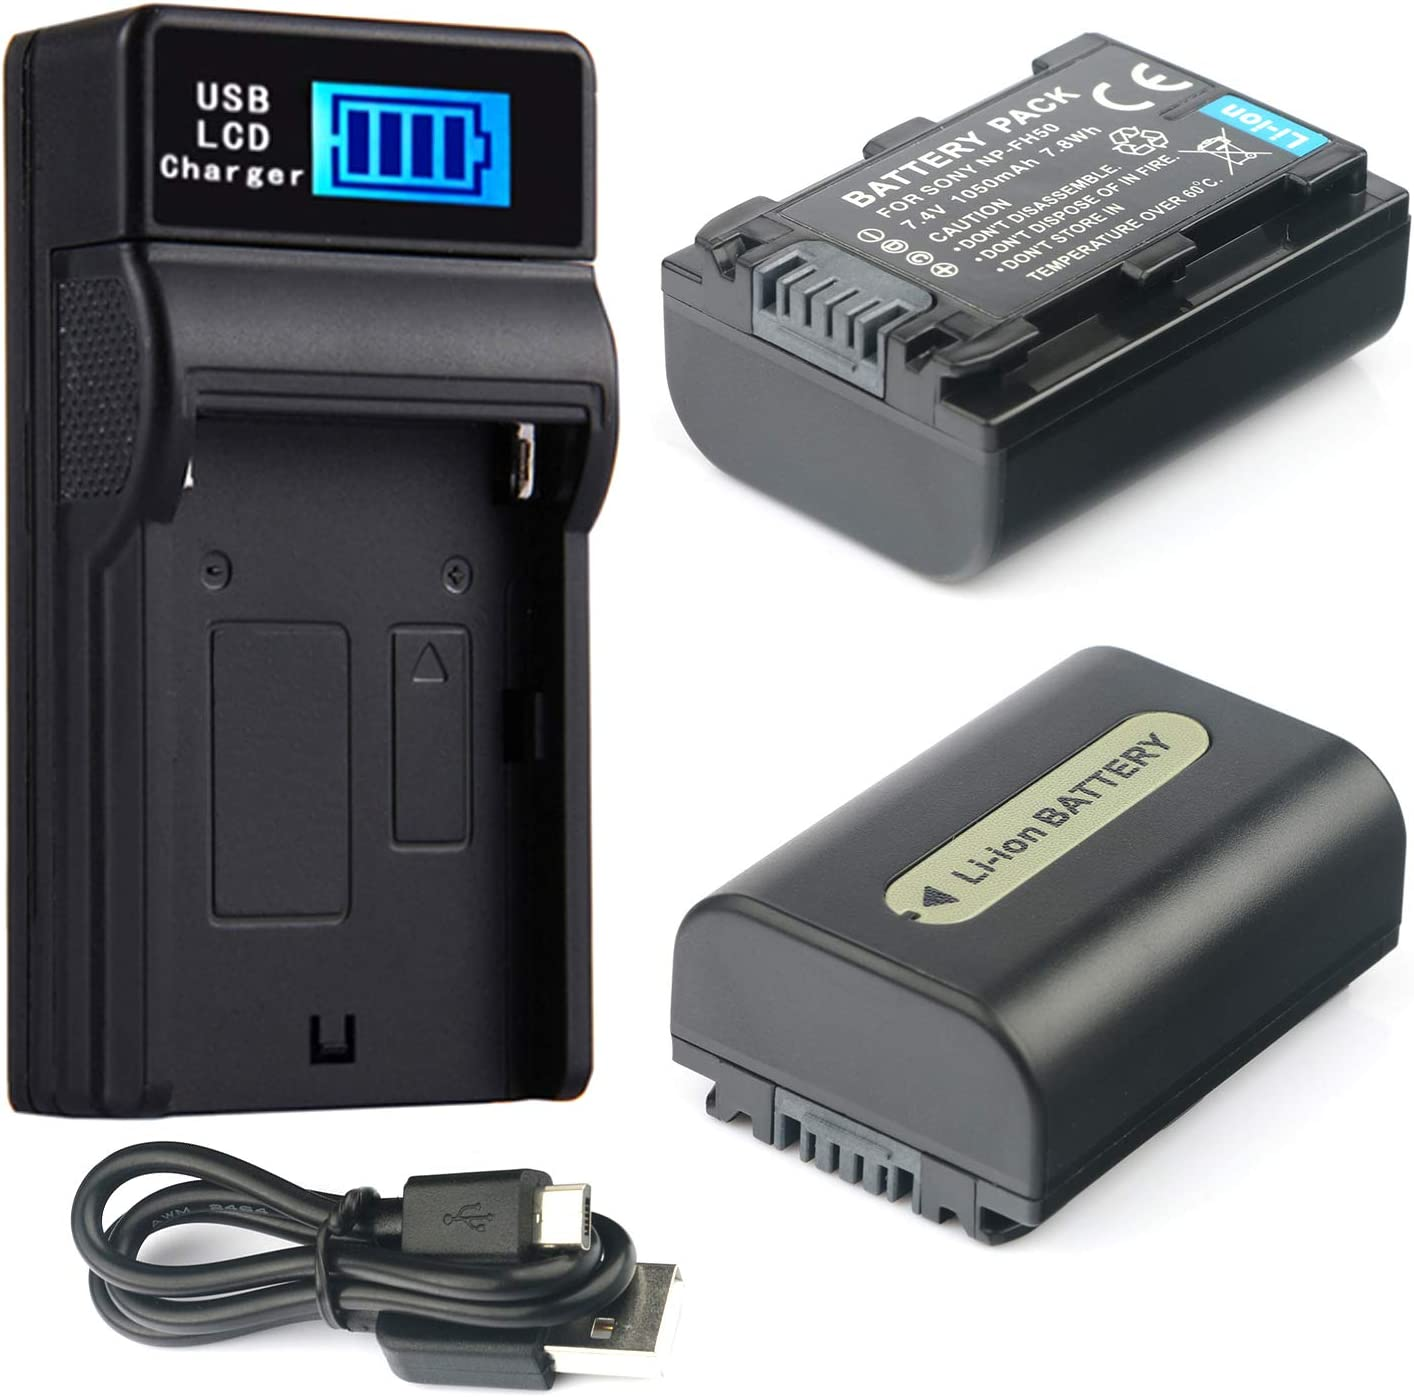 DCR-SR65 DCR-SR55 DCR-SR62 DCR-SR57 DCR-SR67 Handycam Camcorder LCD Quick Battery Charger for Sony DCR-SR52